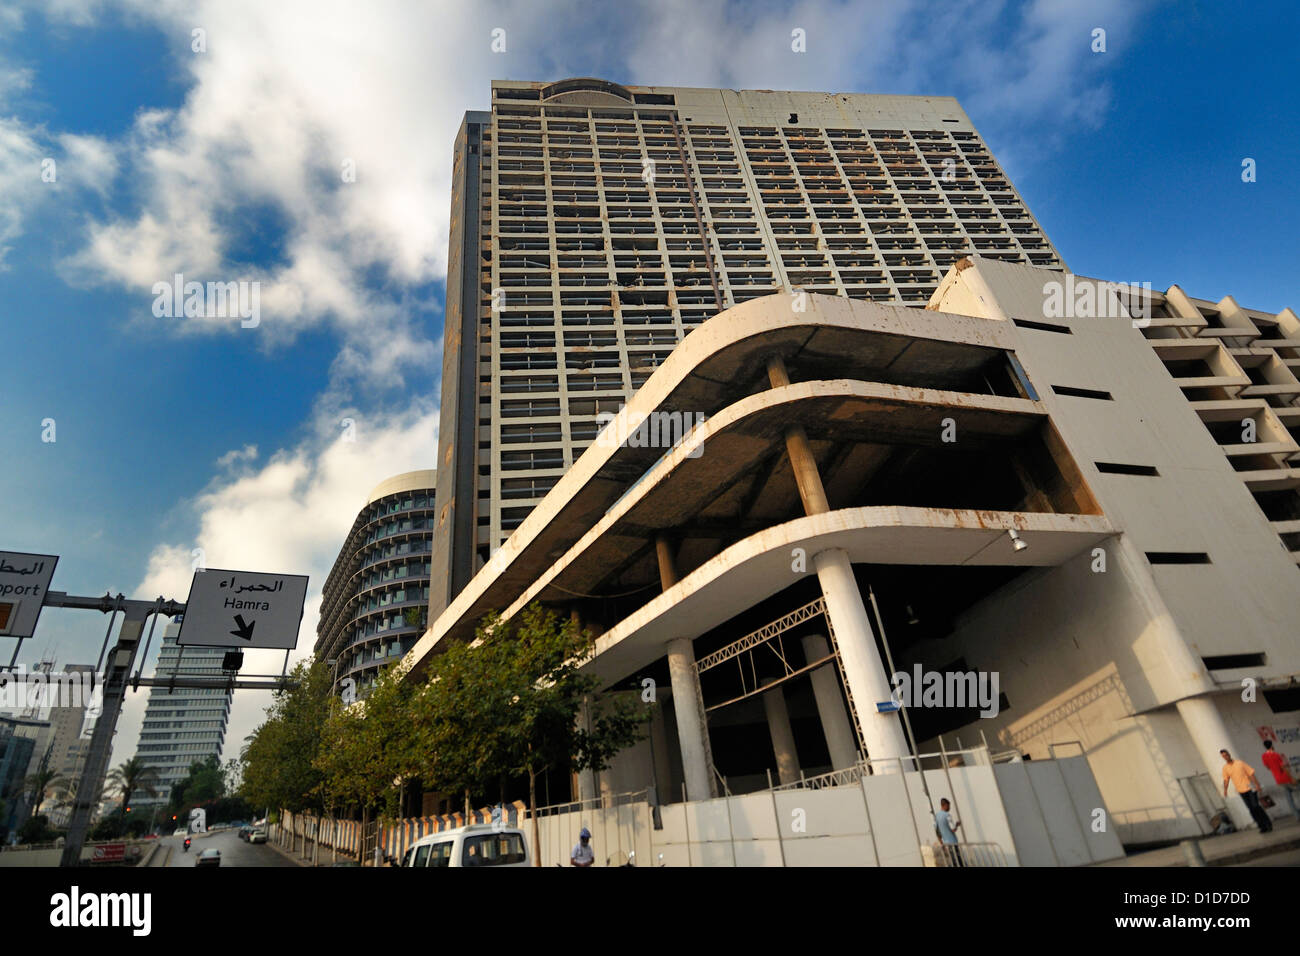 The famous Holliday Inn Hotel, during the lebanese civil war on the fire green line. Beirut, Lebanon Roberto Nistri - Stock Image